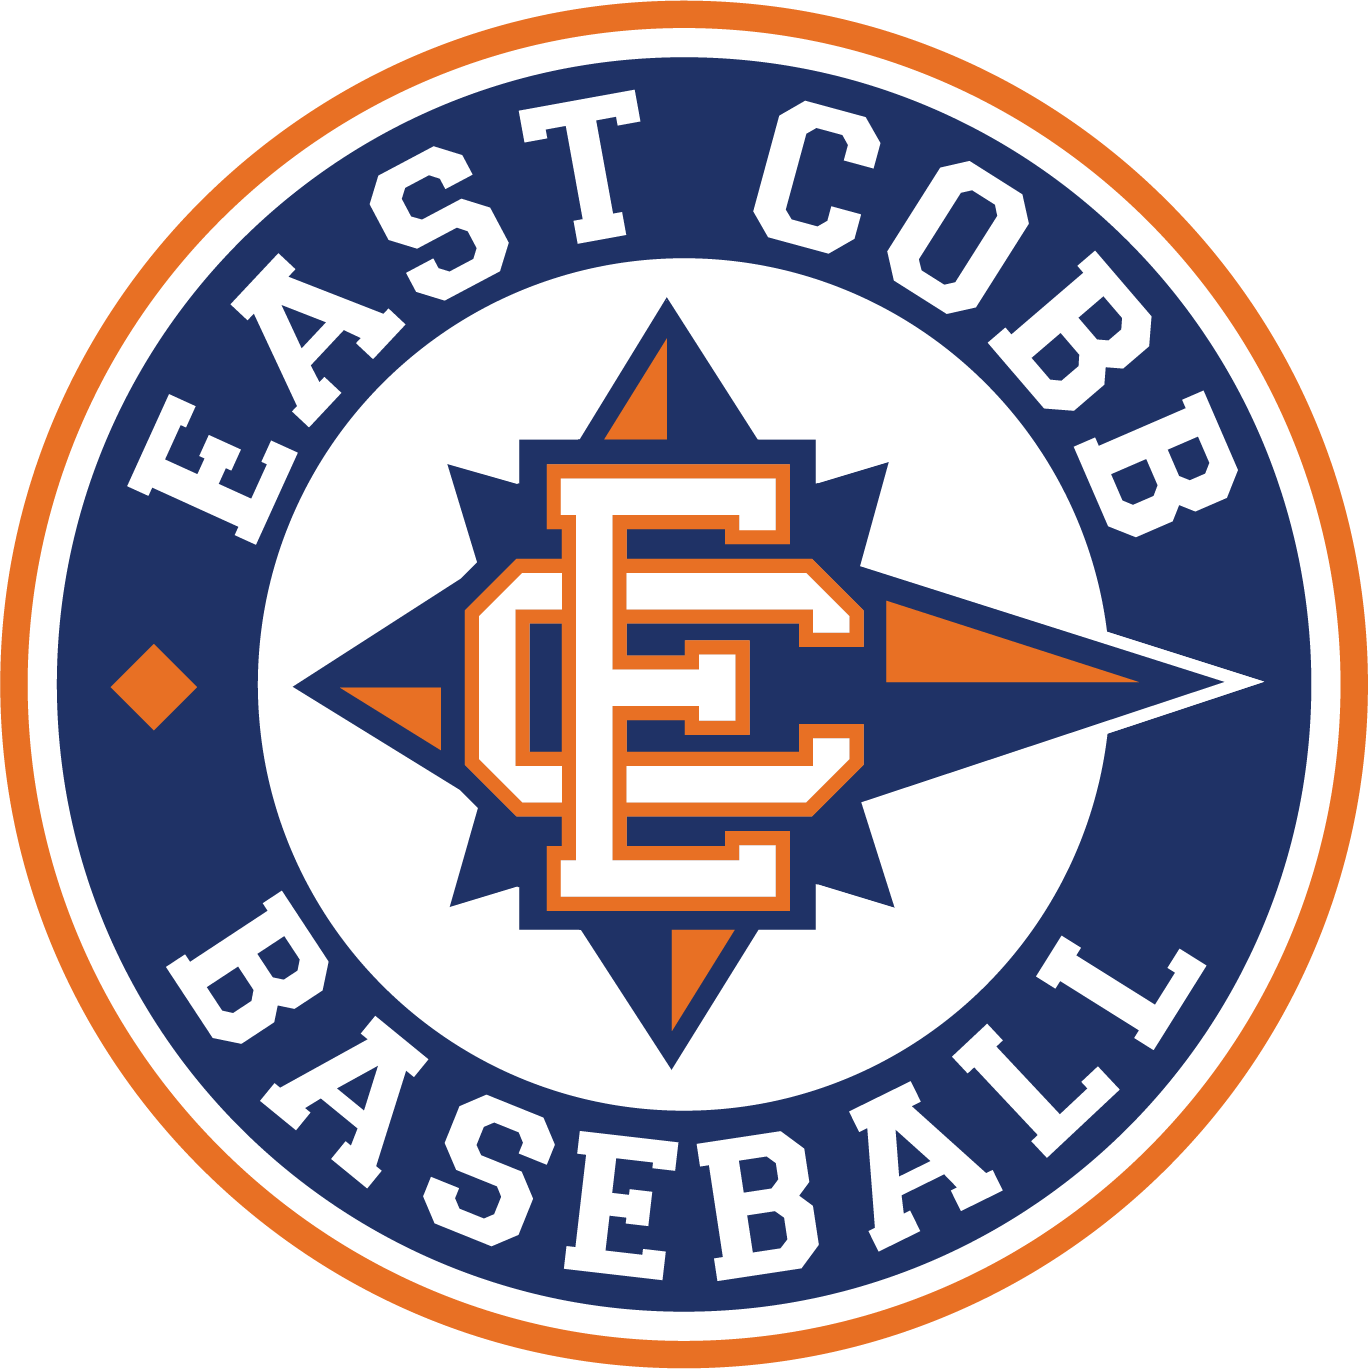 East Cobb Baseball